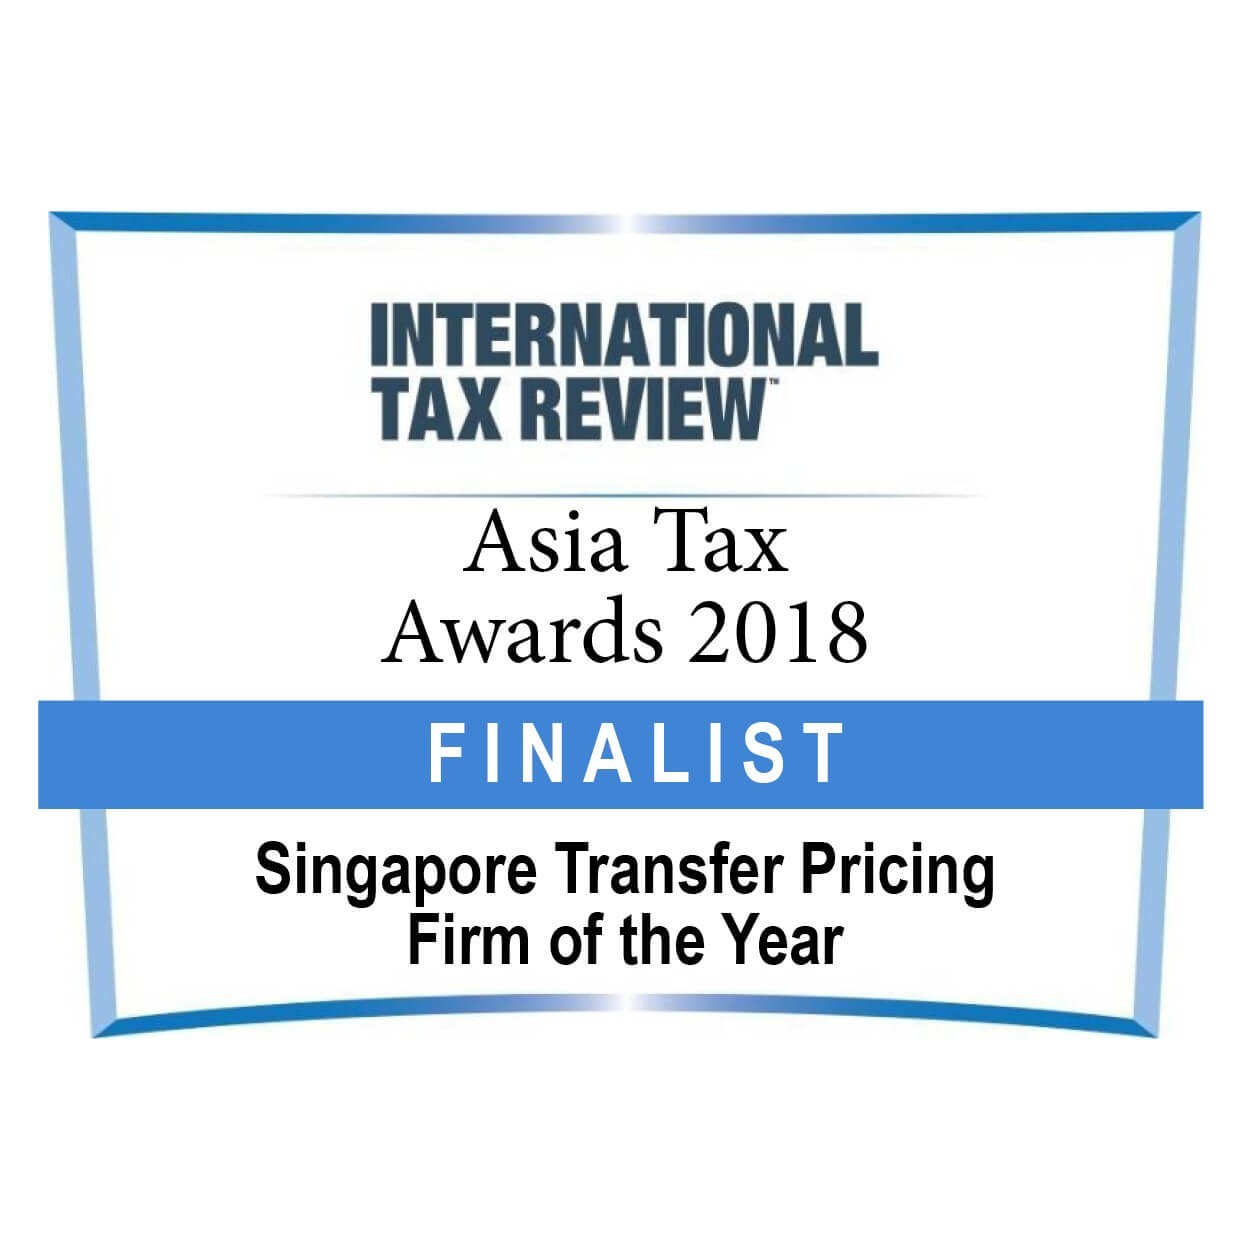 Singapore TP Firm - 2018